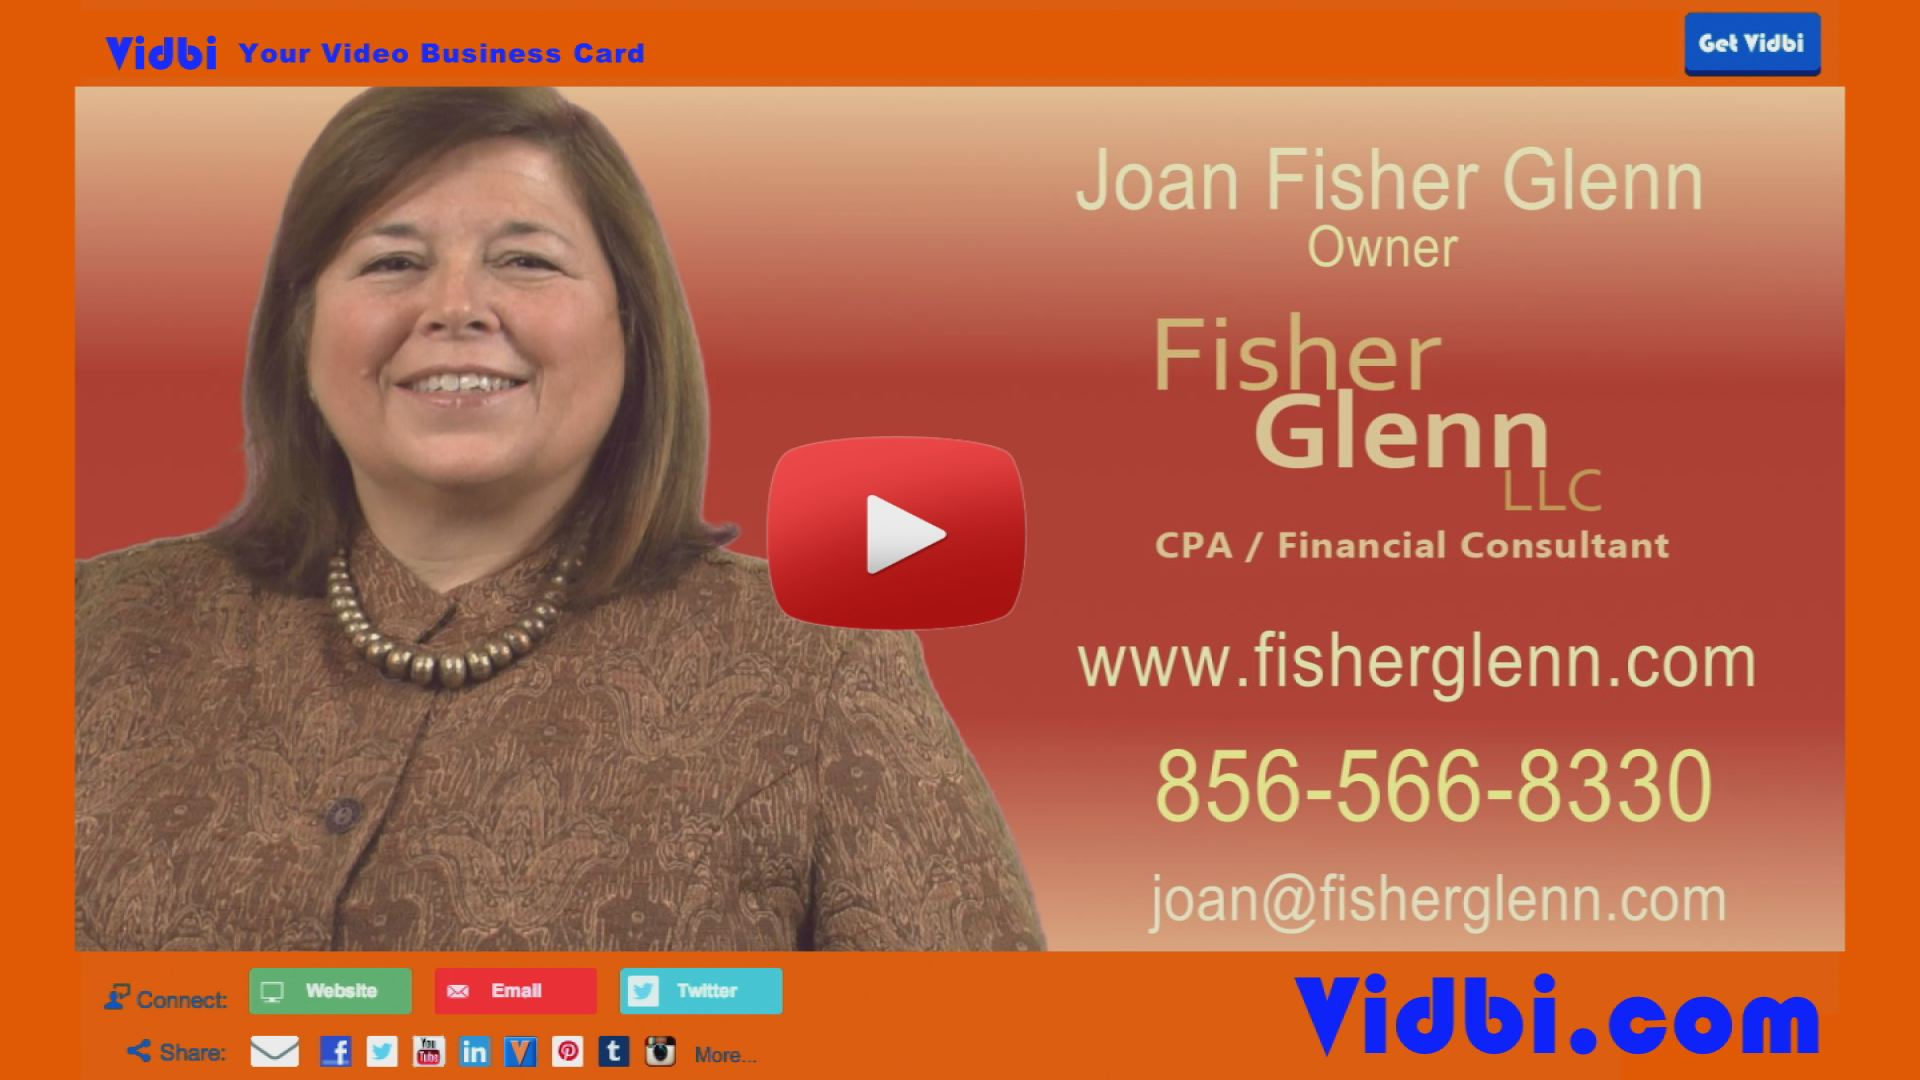 Joan Fisher Glenn - Fisher Glenn LLC Vidbi